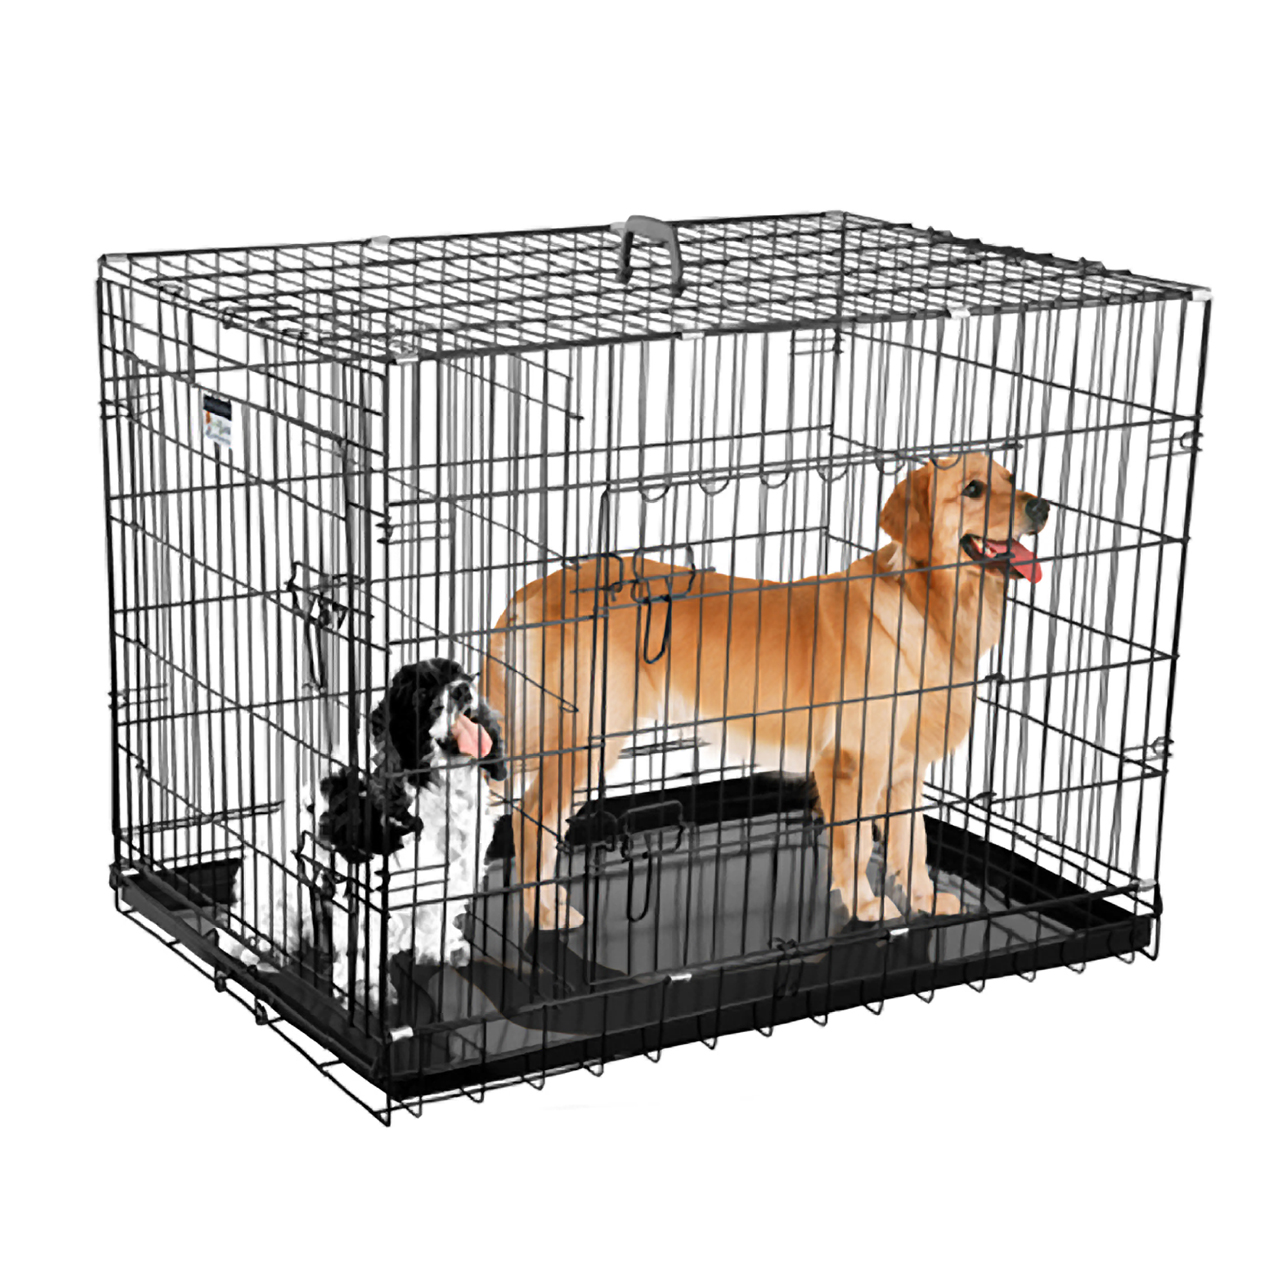 Pet trex 36quot folding pet crate kennel wire cage for dogs for 36 inch dog crate with divider